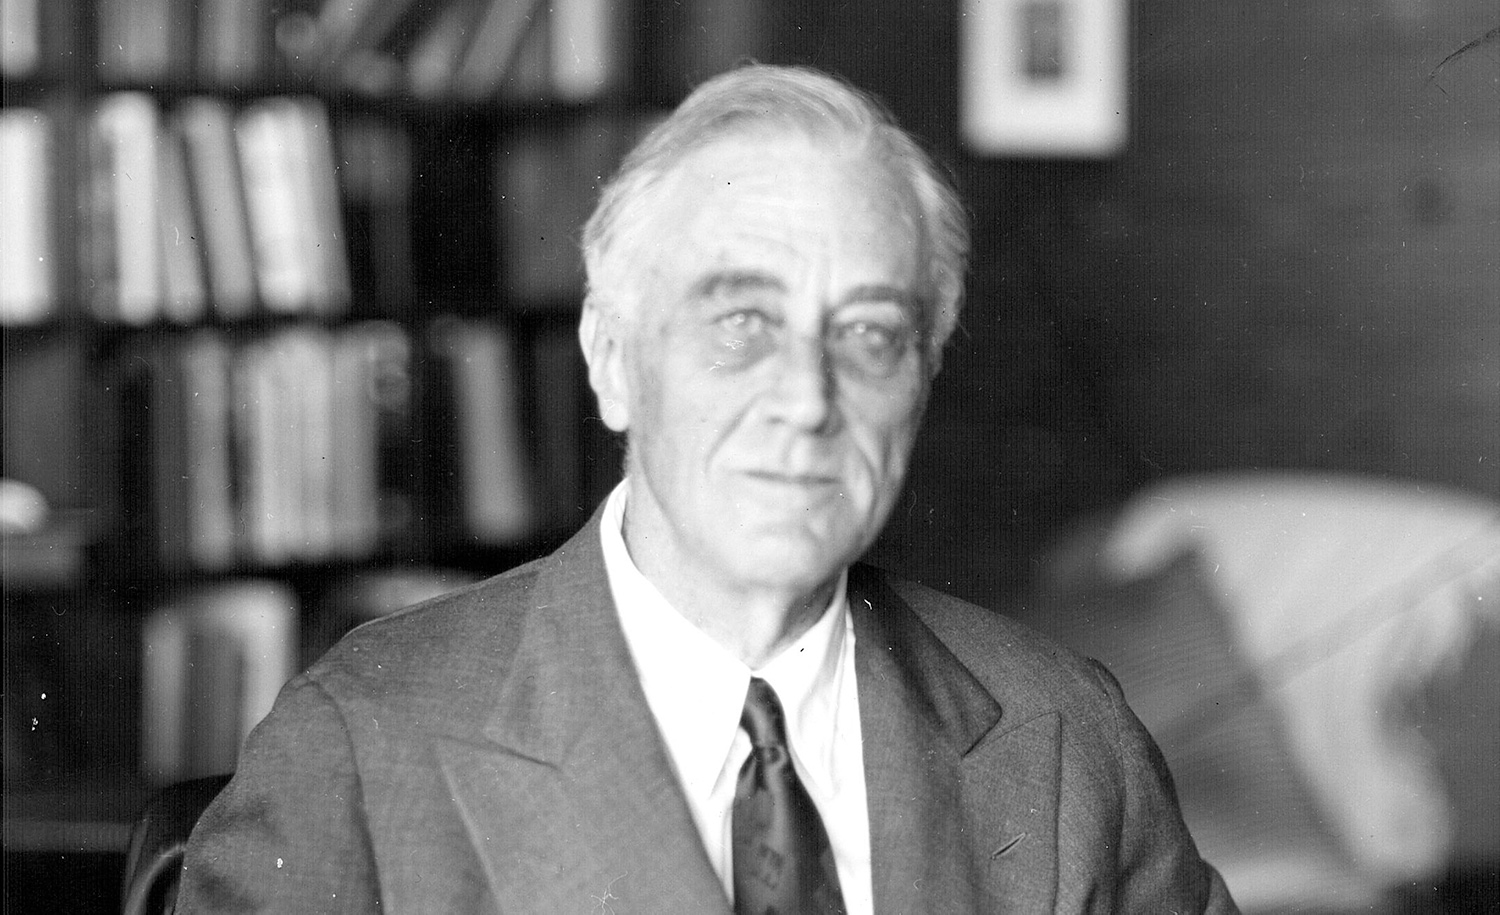 The last photograph of Franklin Delano Roosevelt, taken on April 12, 1945 at Warm Springs, GA by Nicholas Robbins. He died the following day. Wikipedia.